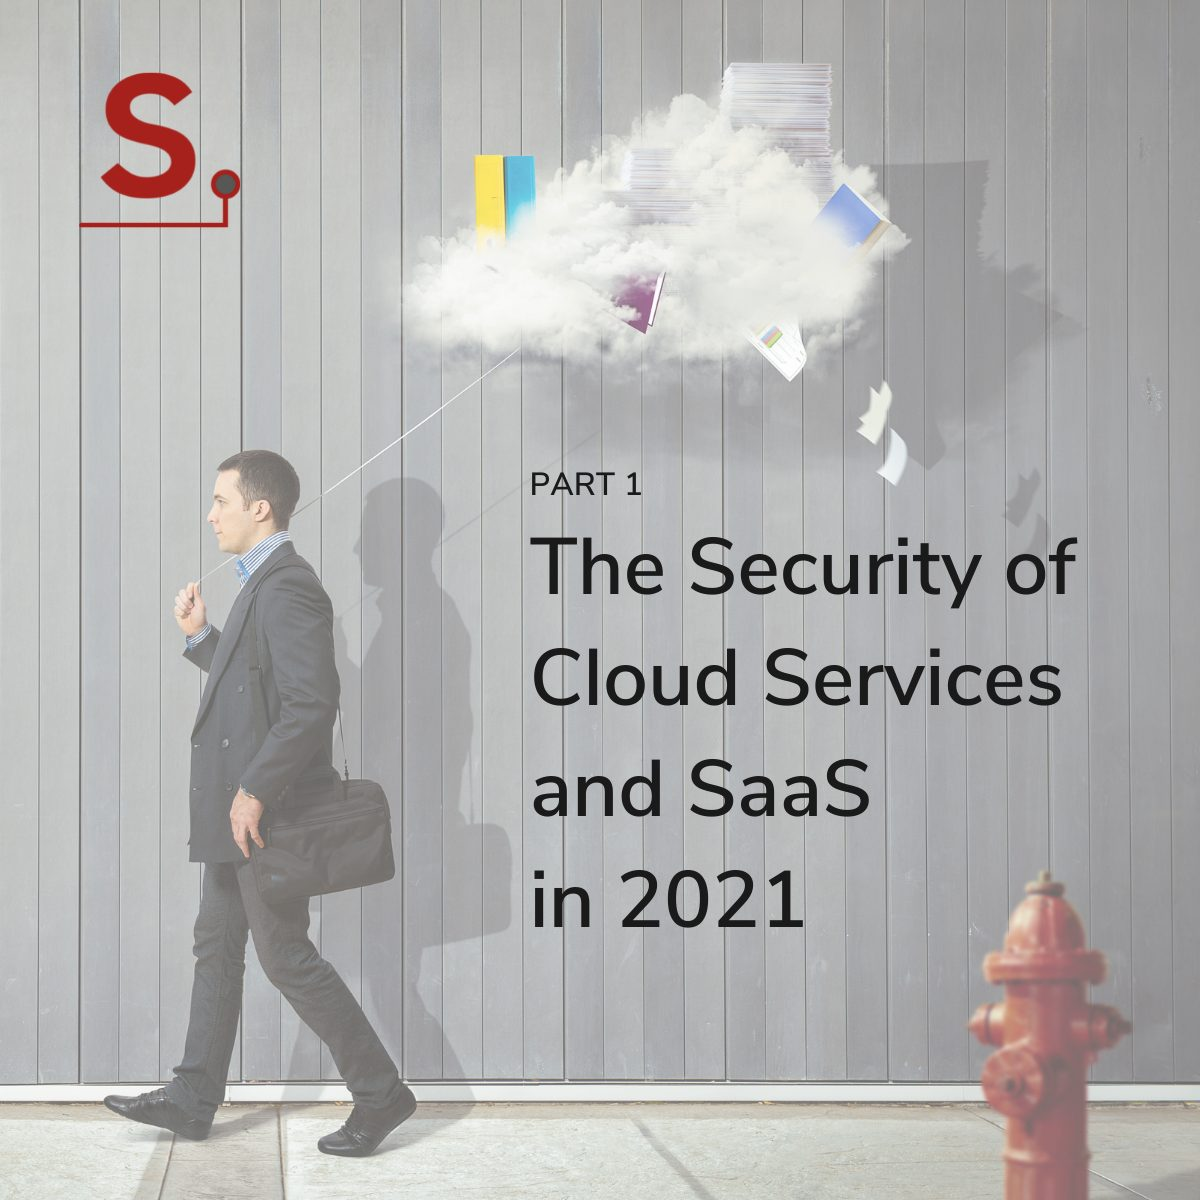 The Security of Cloud Services and SaaS in 2021 – Part 1